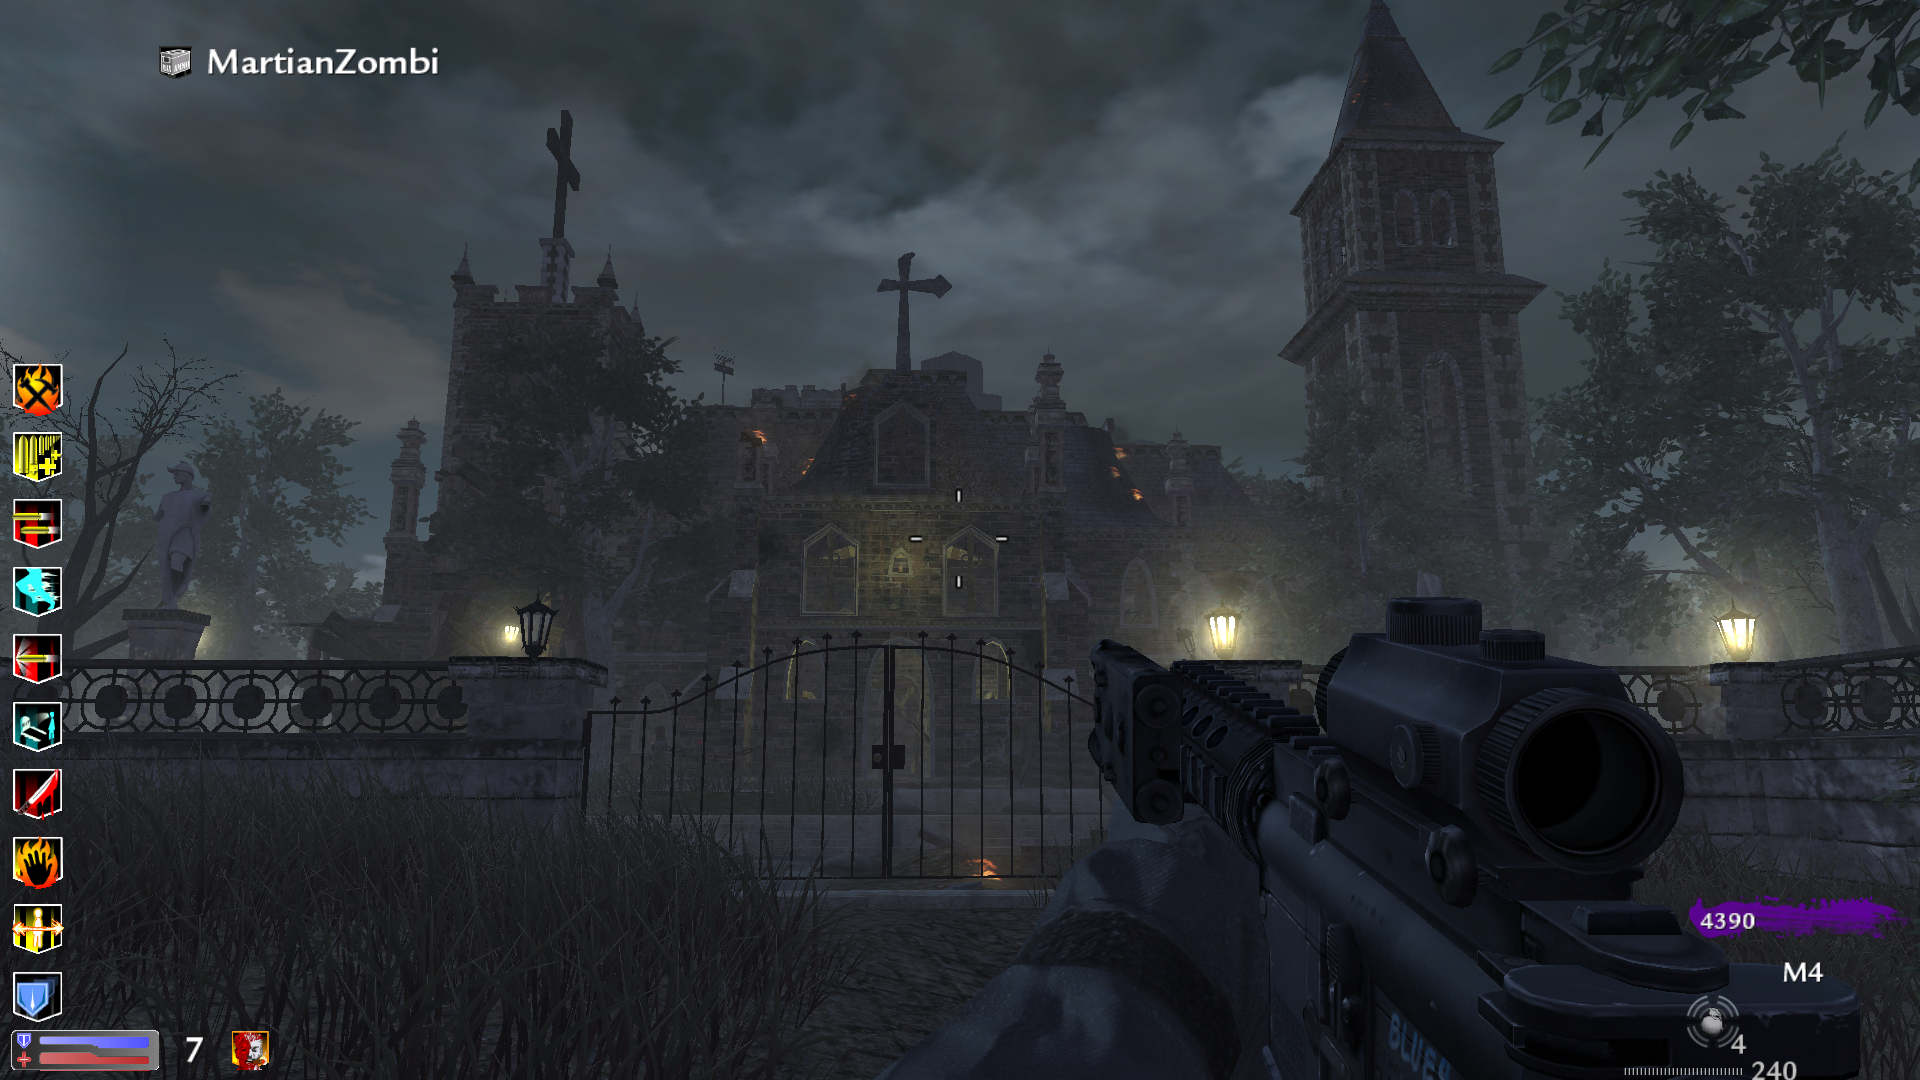 Call Of Duty Zombies Map Packs on